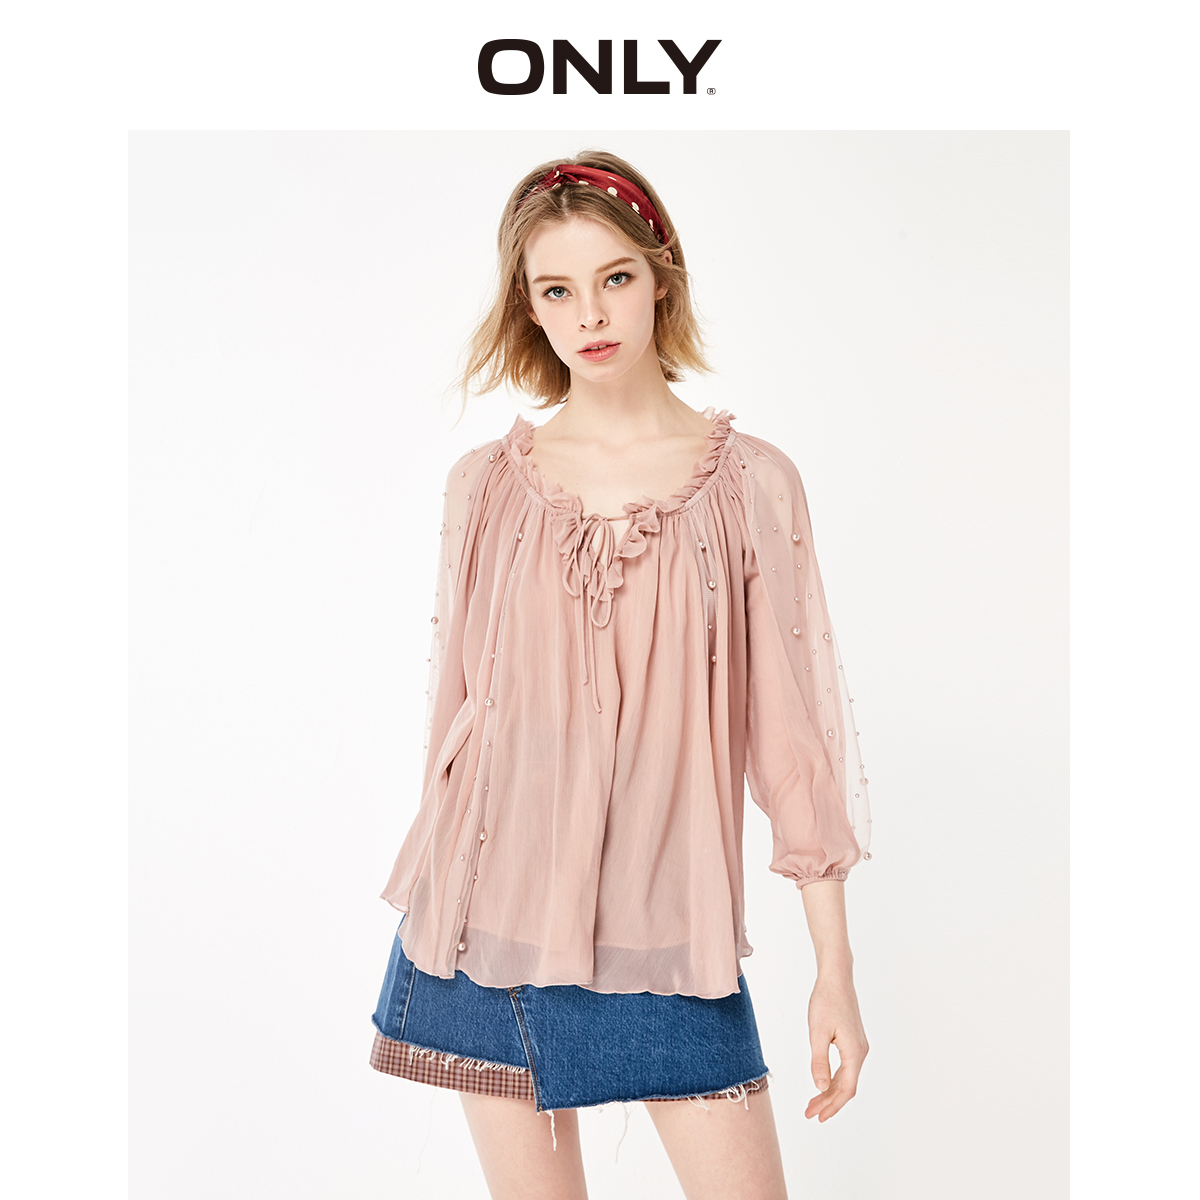 ONLY Women's Loose Fit Gauzy Lace-up Chiffon Shirt | 119151535 image